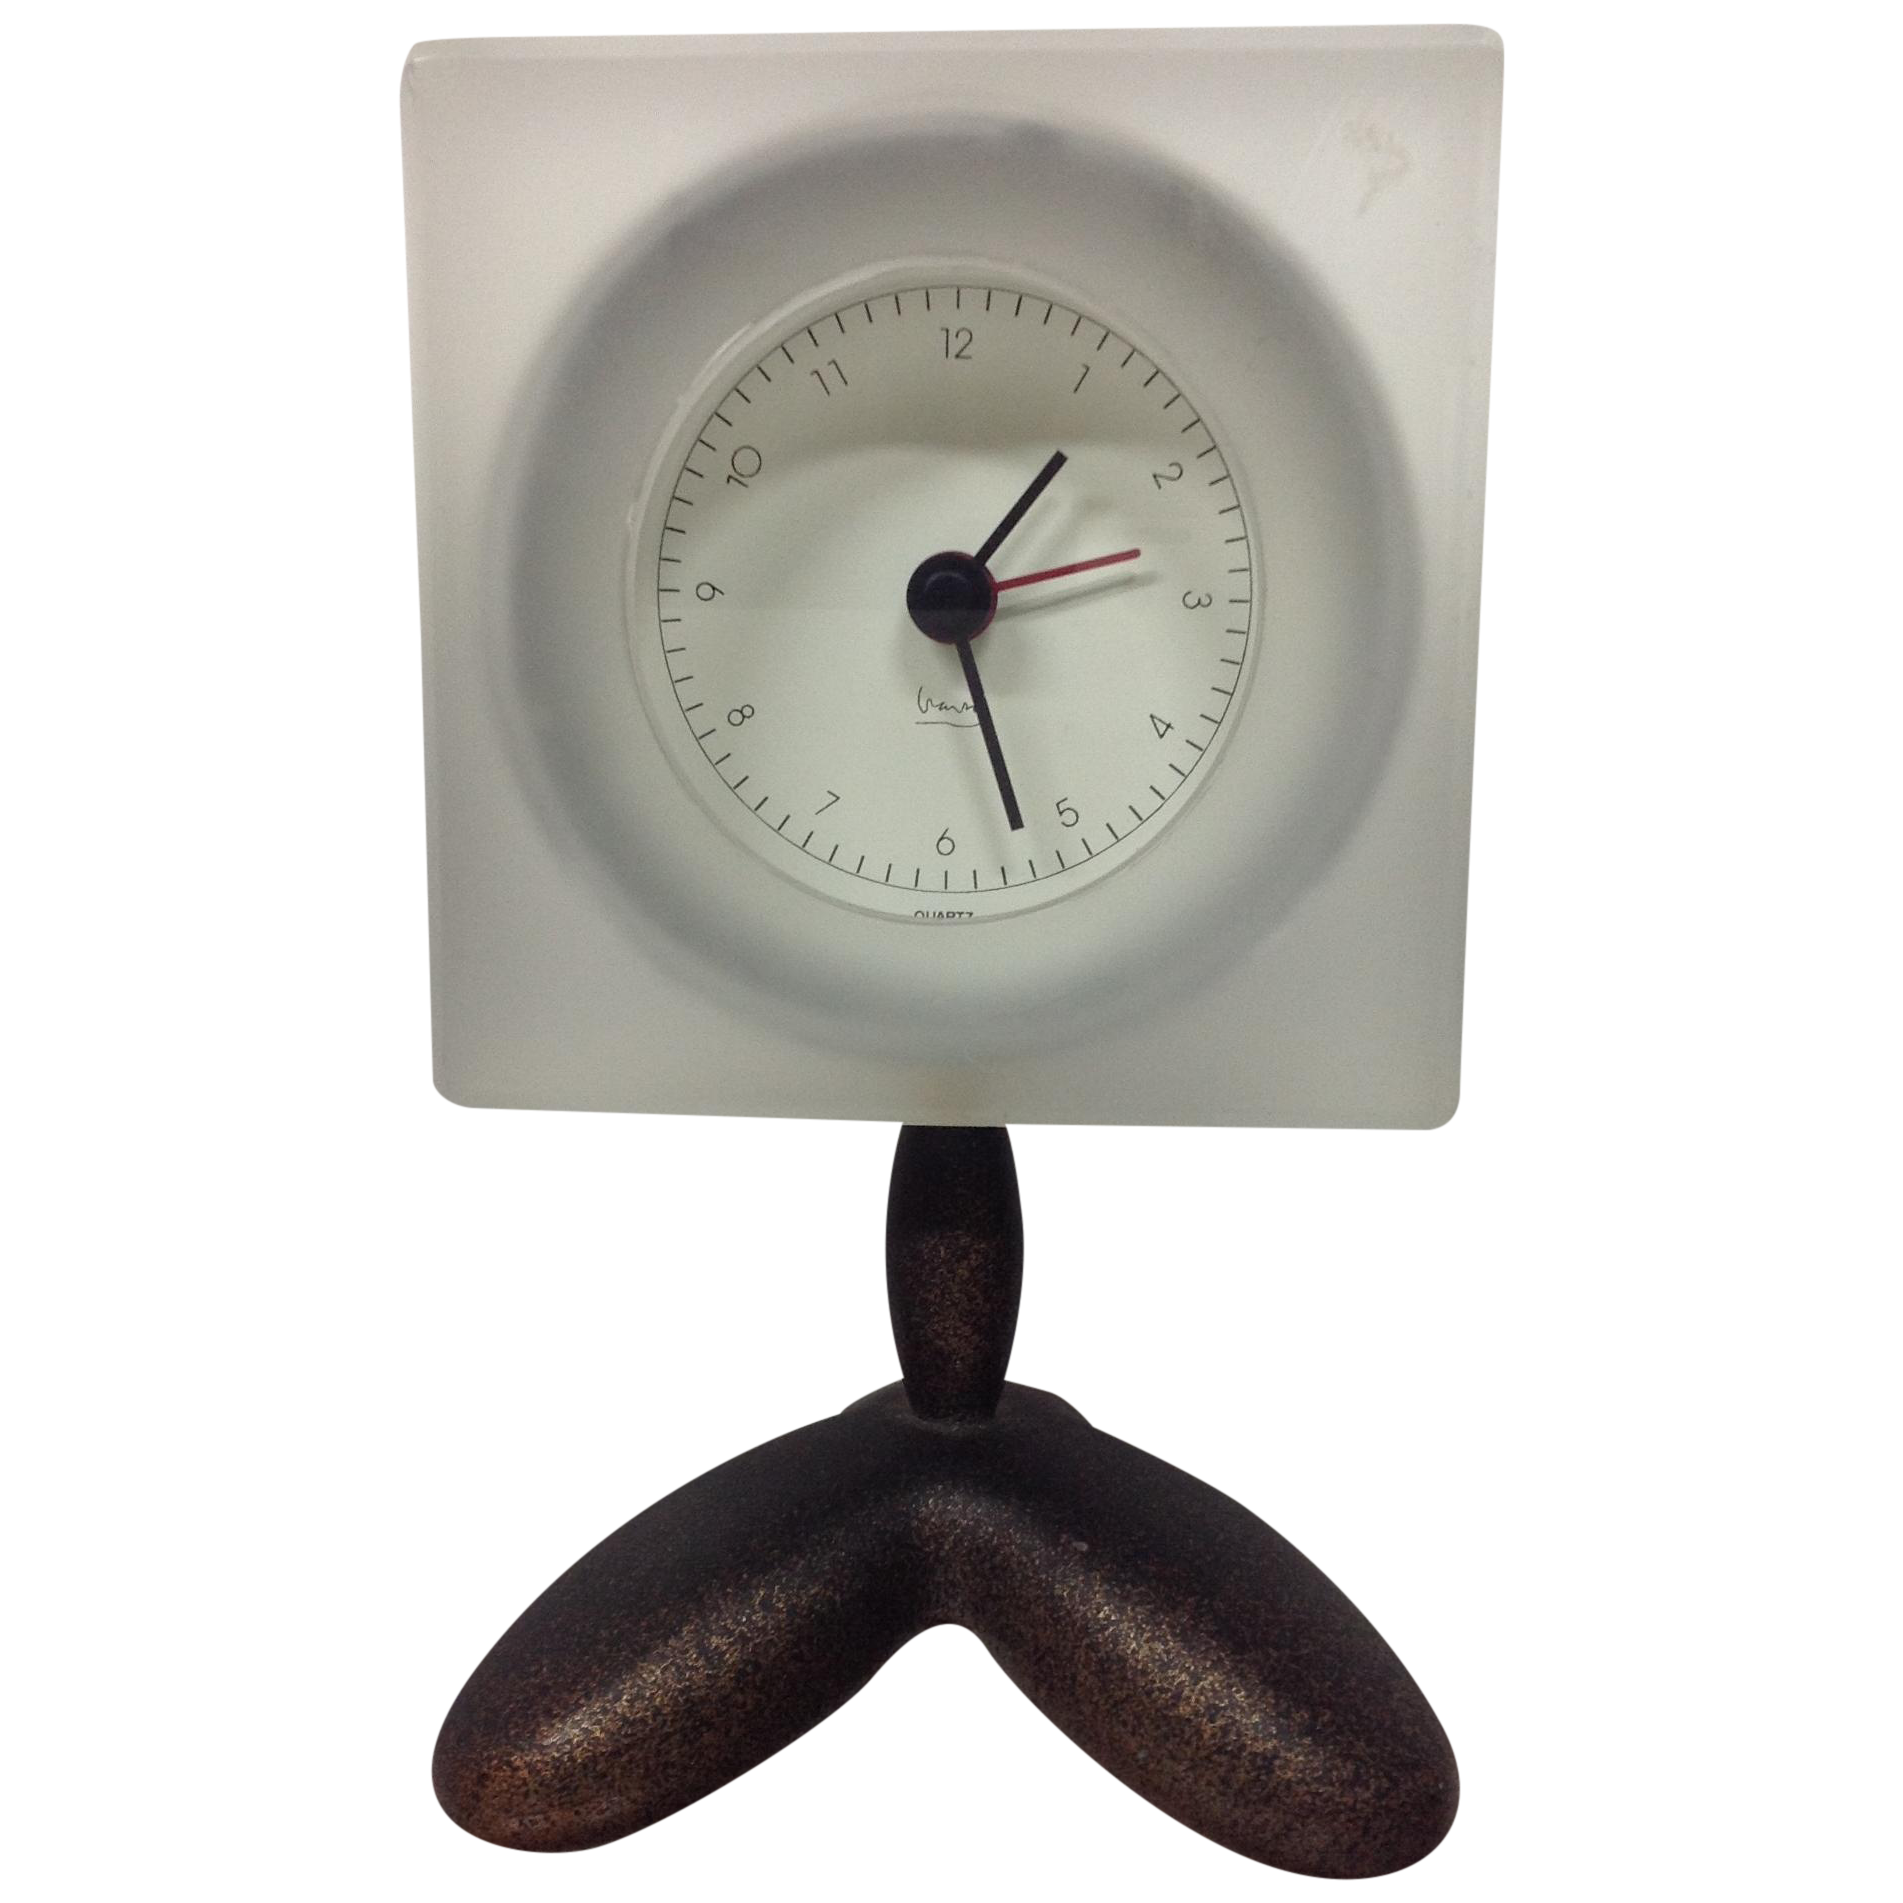 wendell castle style post modern clock by michael graves | chairish